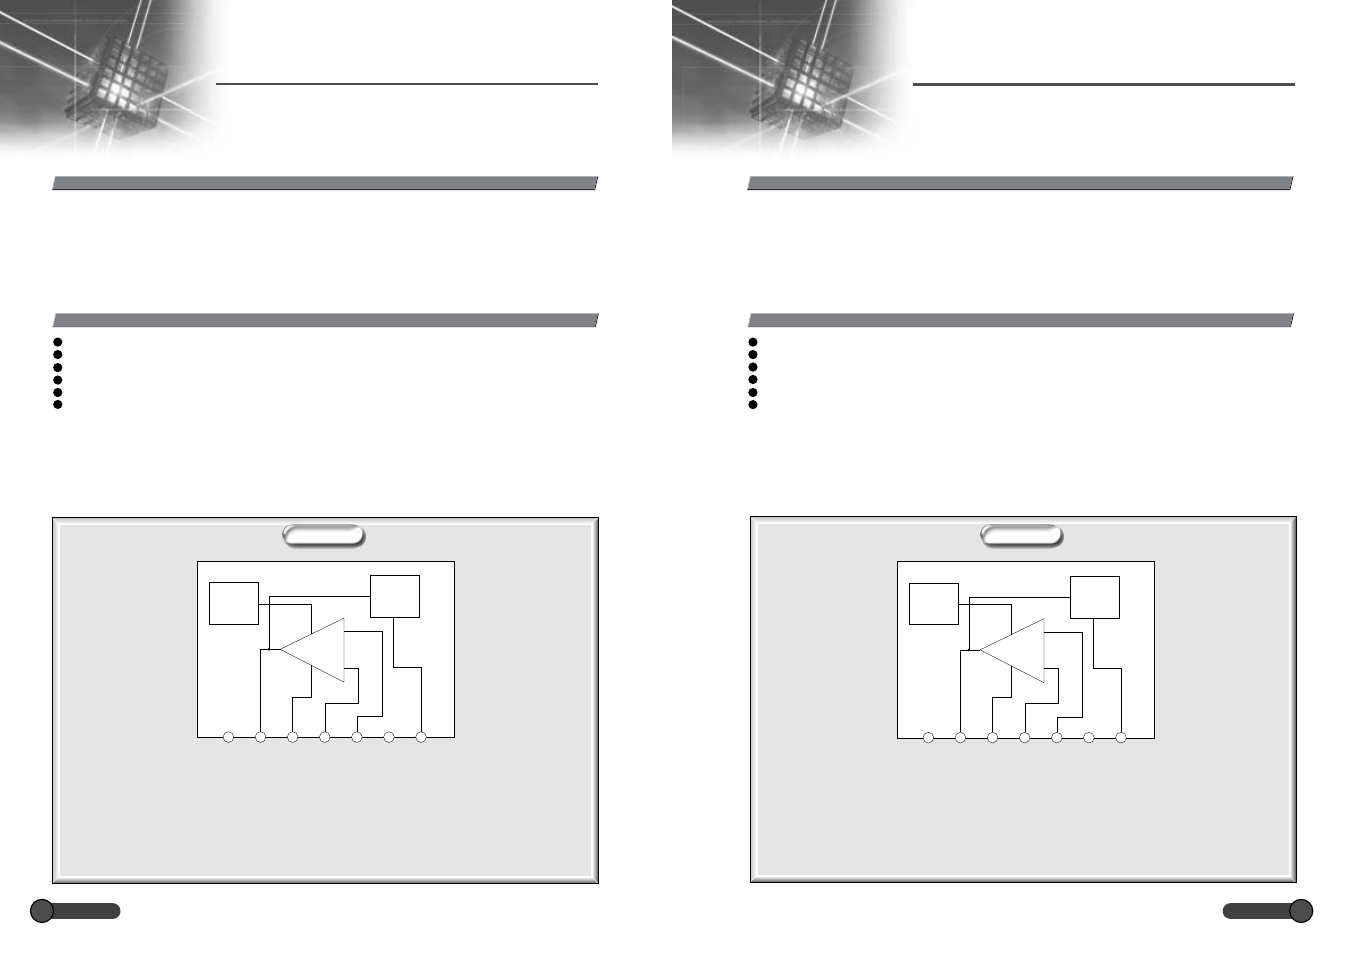 hight resolution of la7841 la7845n vertical output ic sanyo ep58b user manual page 14 34